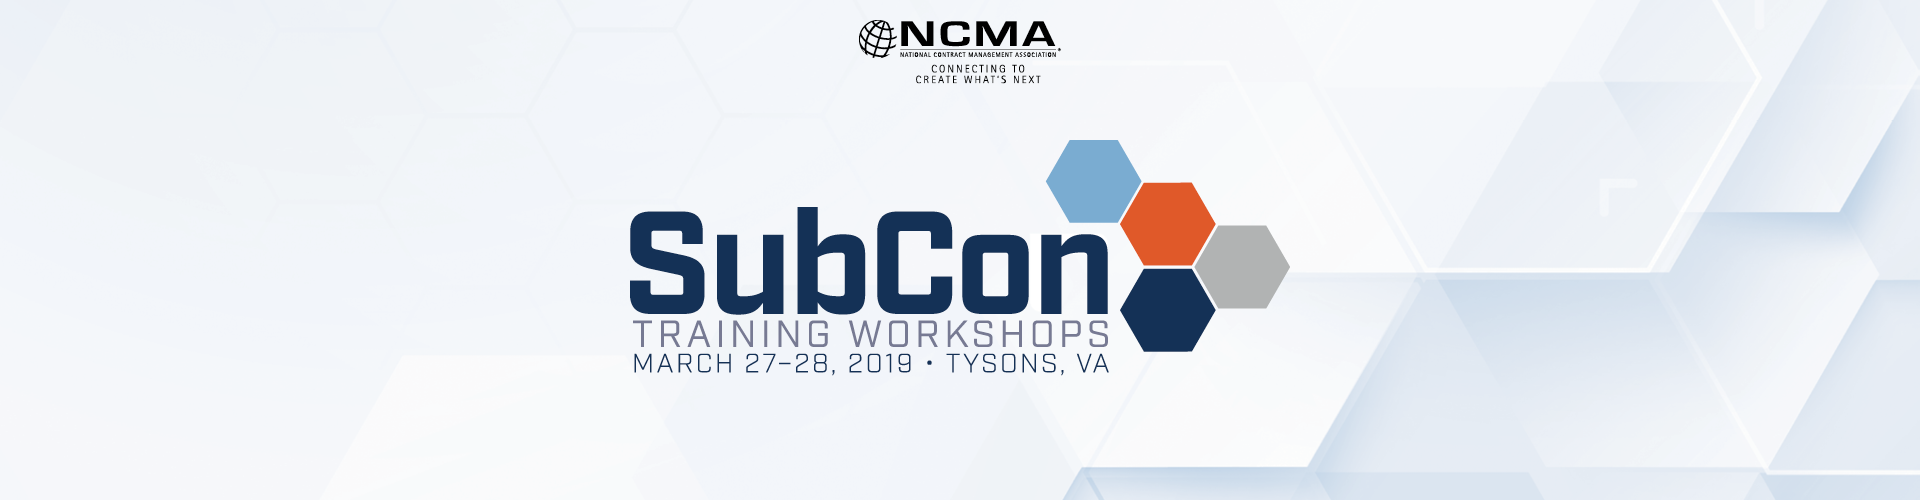 SubCon Training Workshops 2019